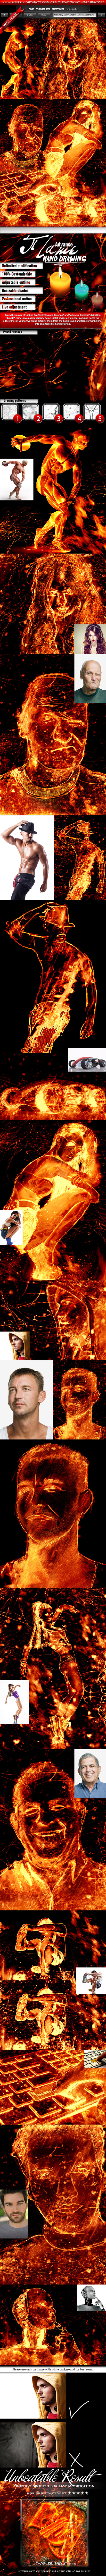 Advance Flame Hand Drawing - Photo Effects Actions